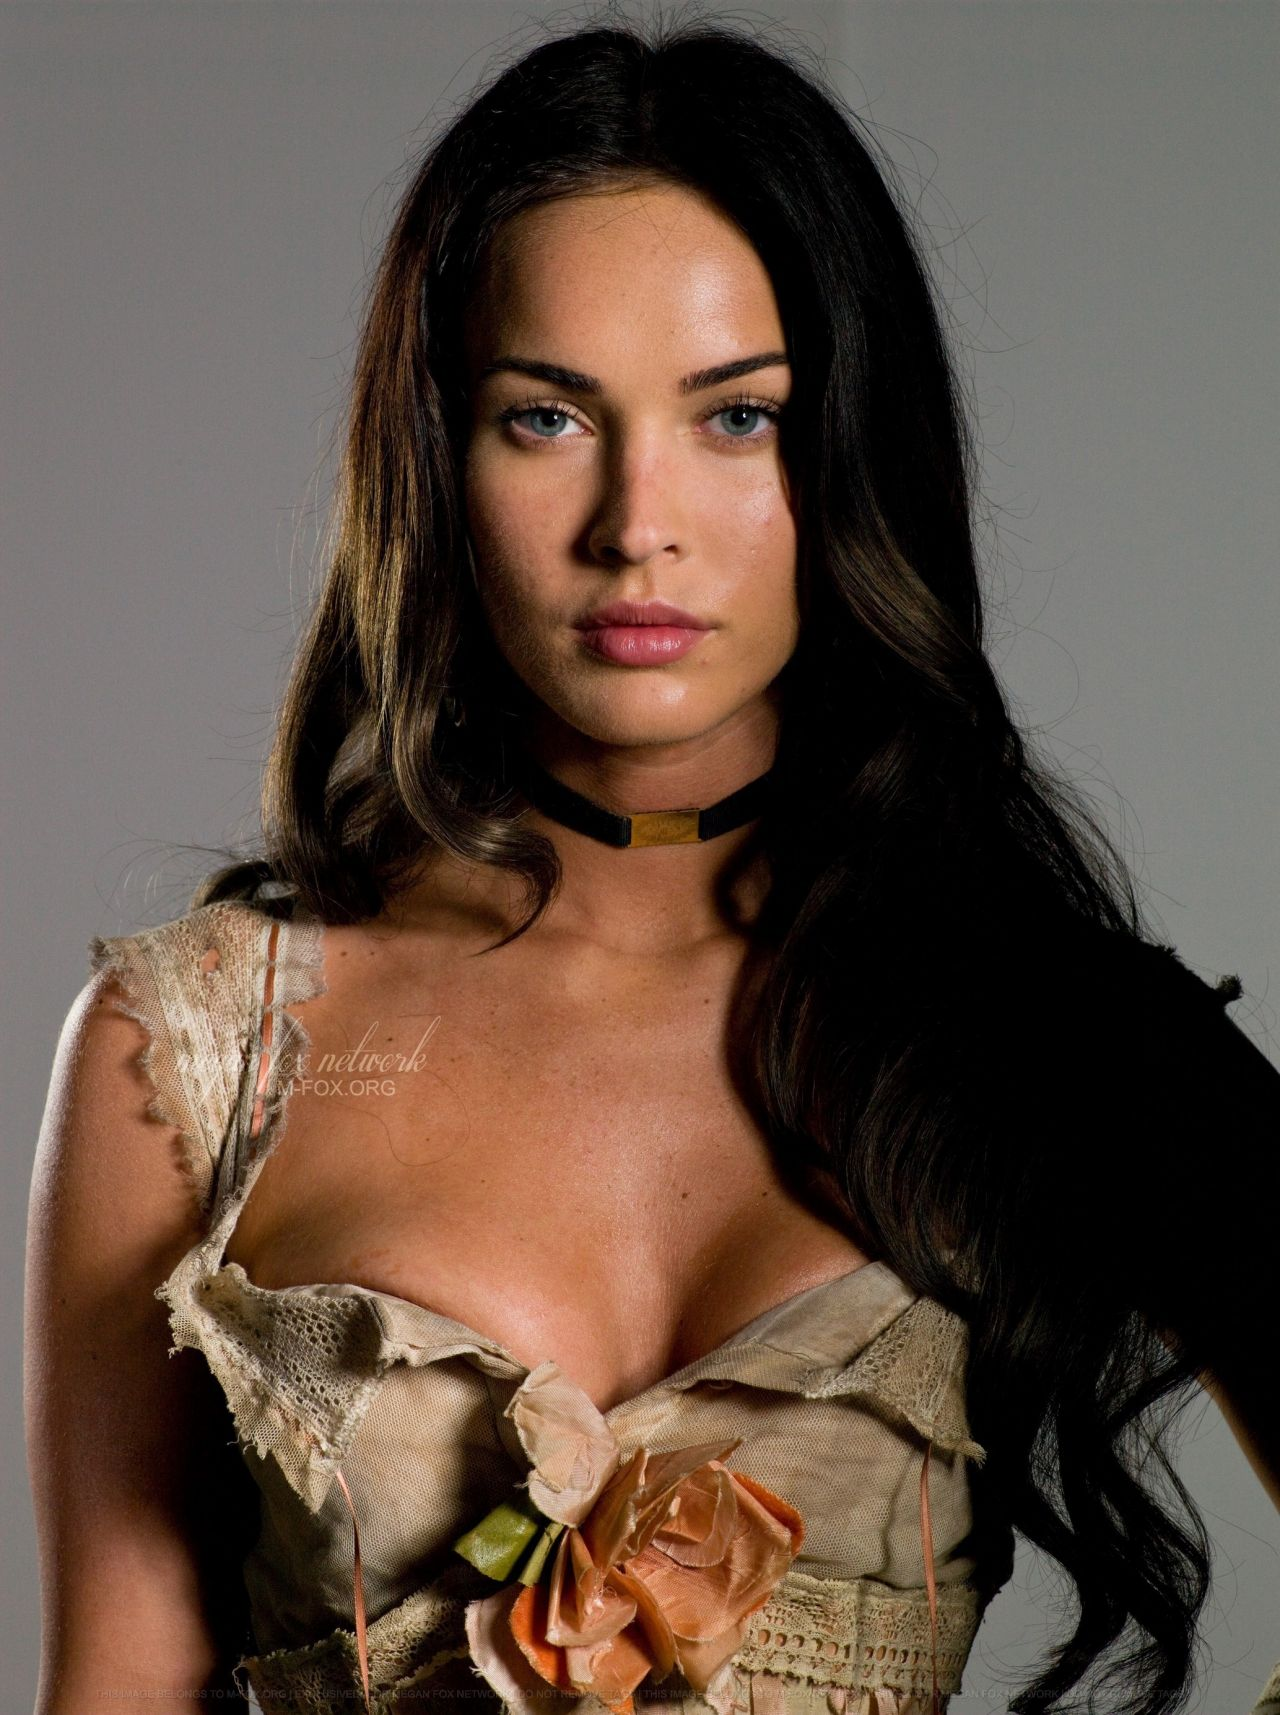 Megan Fox - Jonah Hex Promos